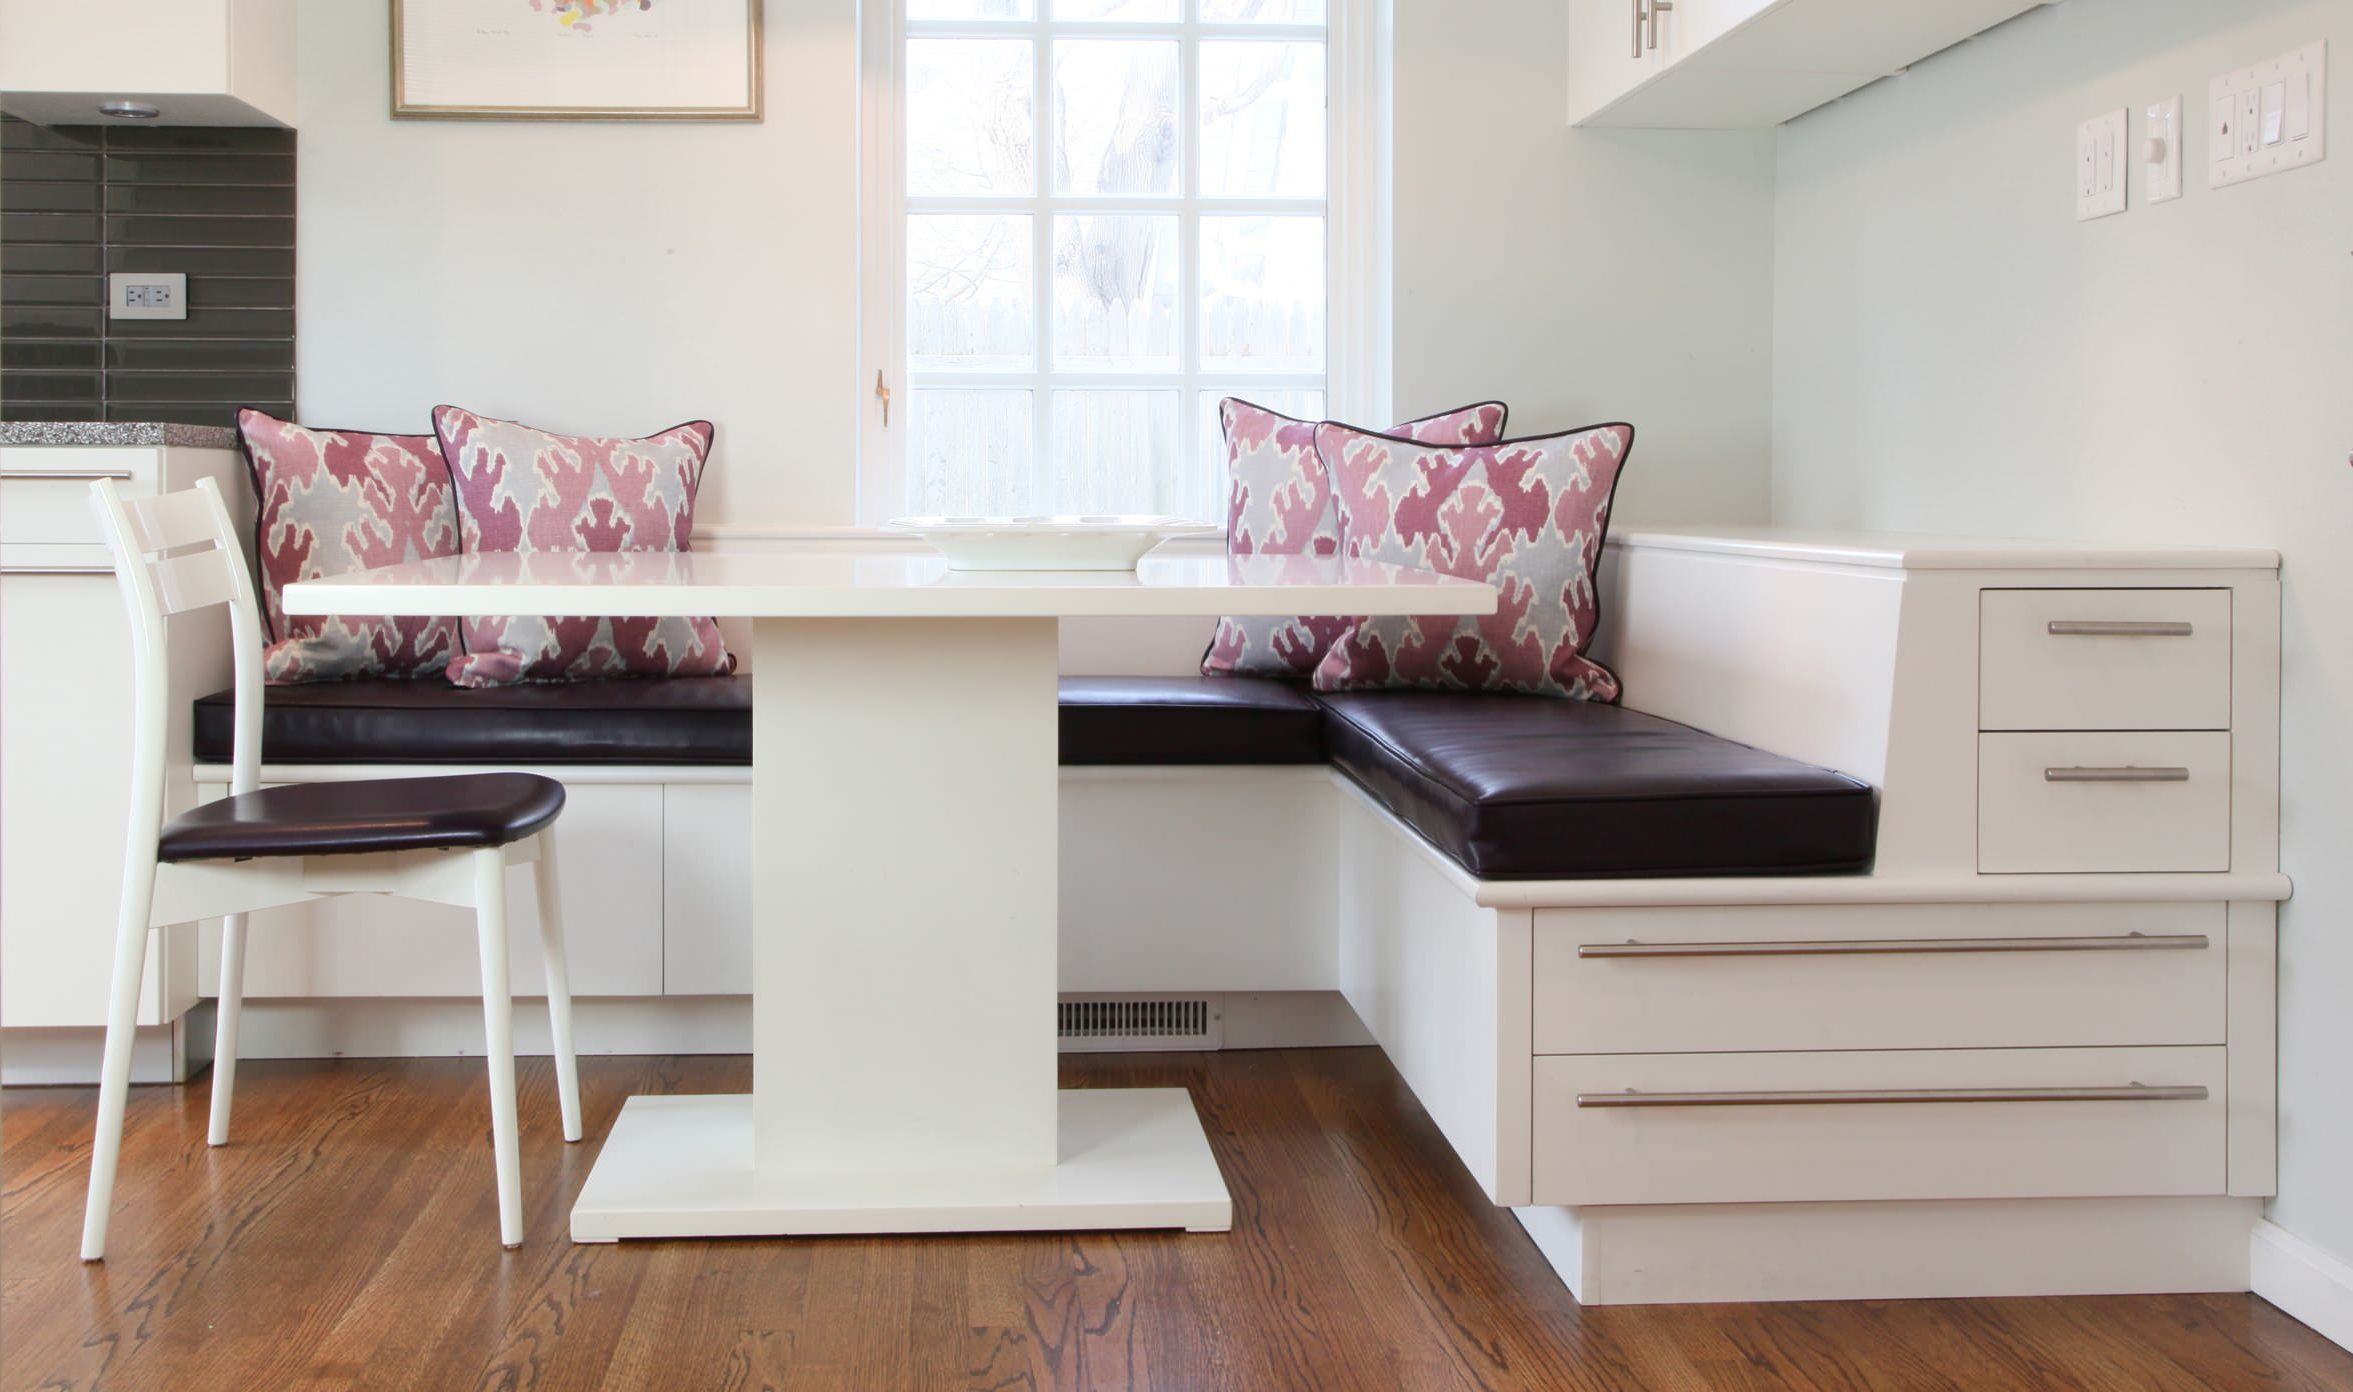 Dining room table with bench seating